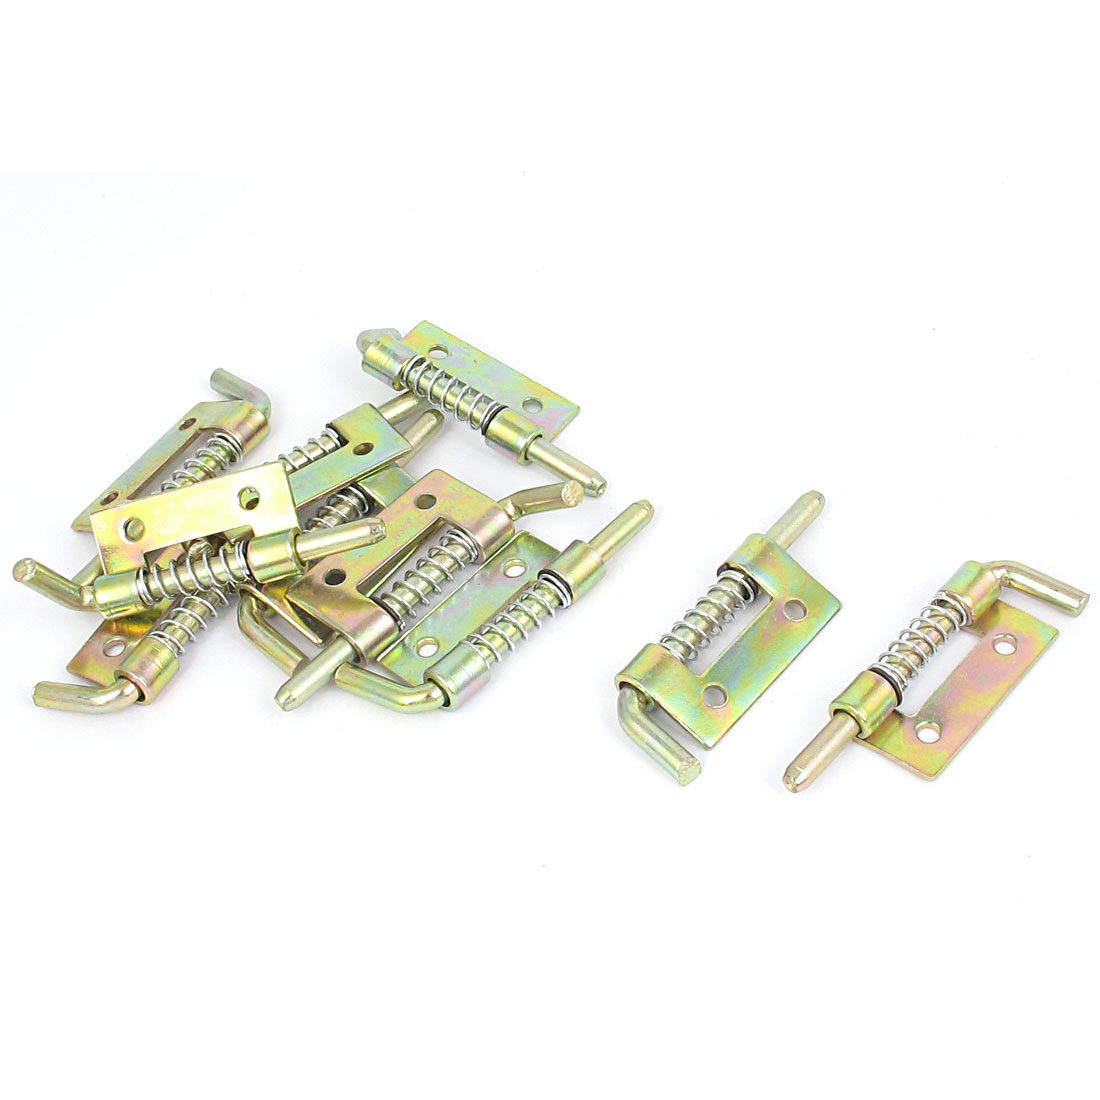 10pcs Bronze Tone Metal Locked Fixed Type Right-handed Spring Barrel Bolt Latch for Gate Door